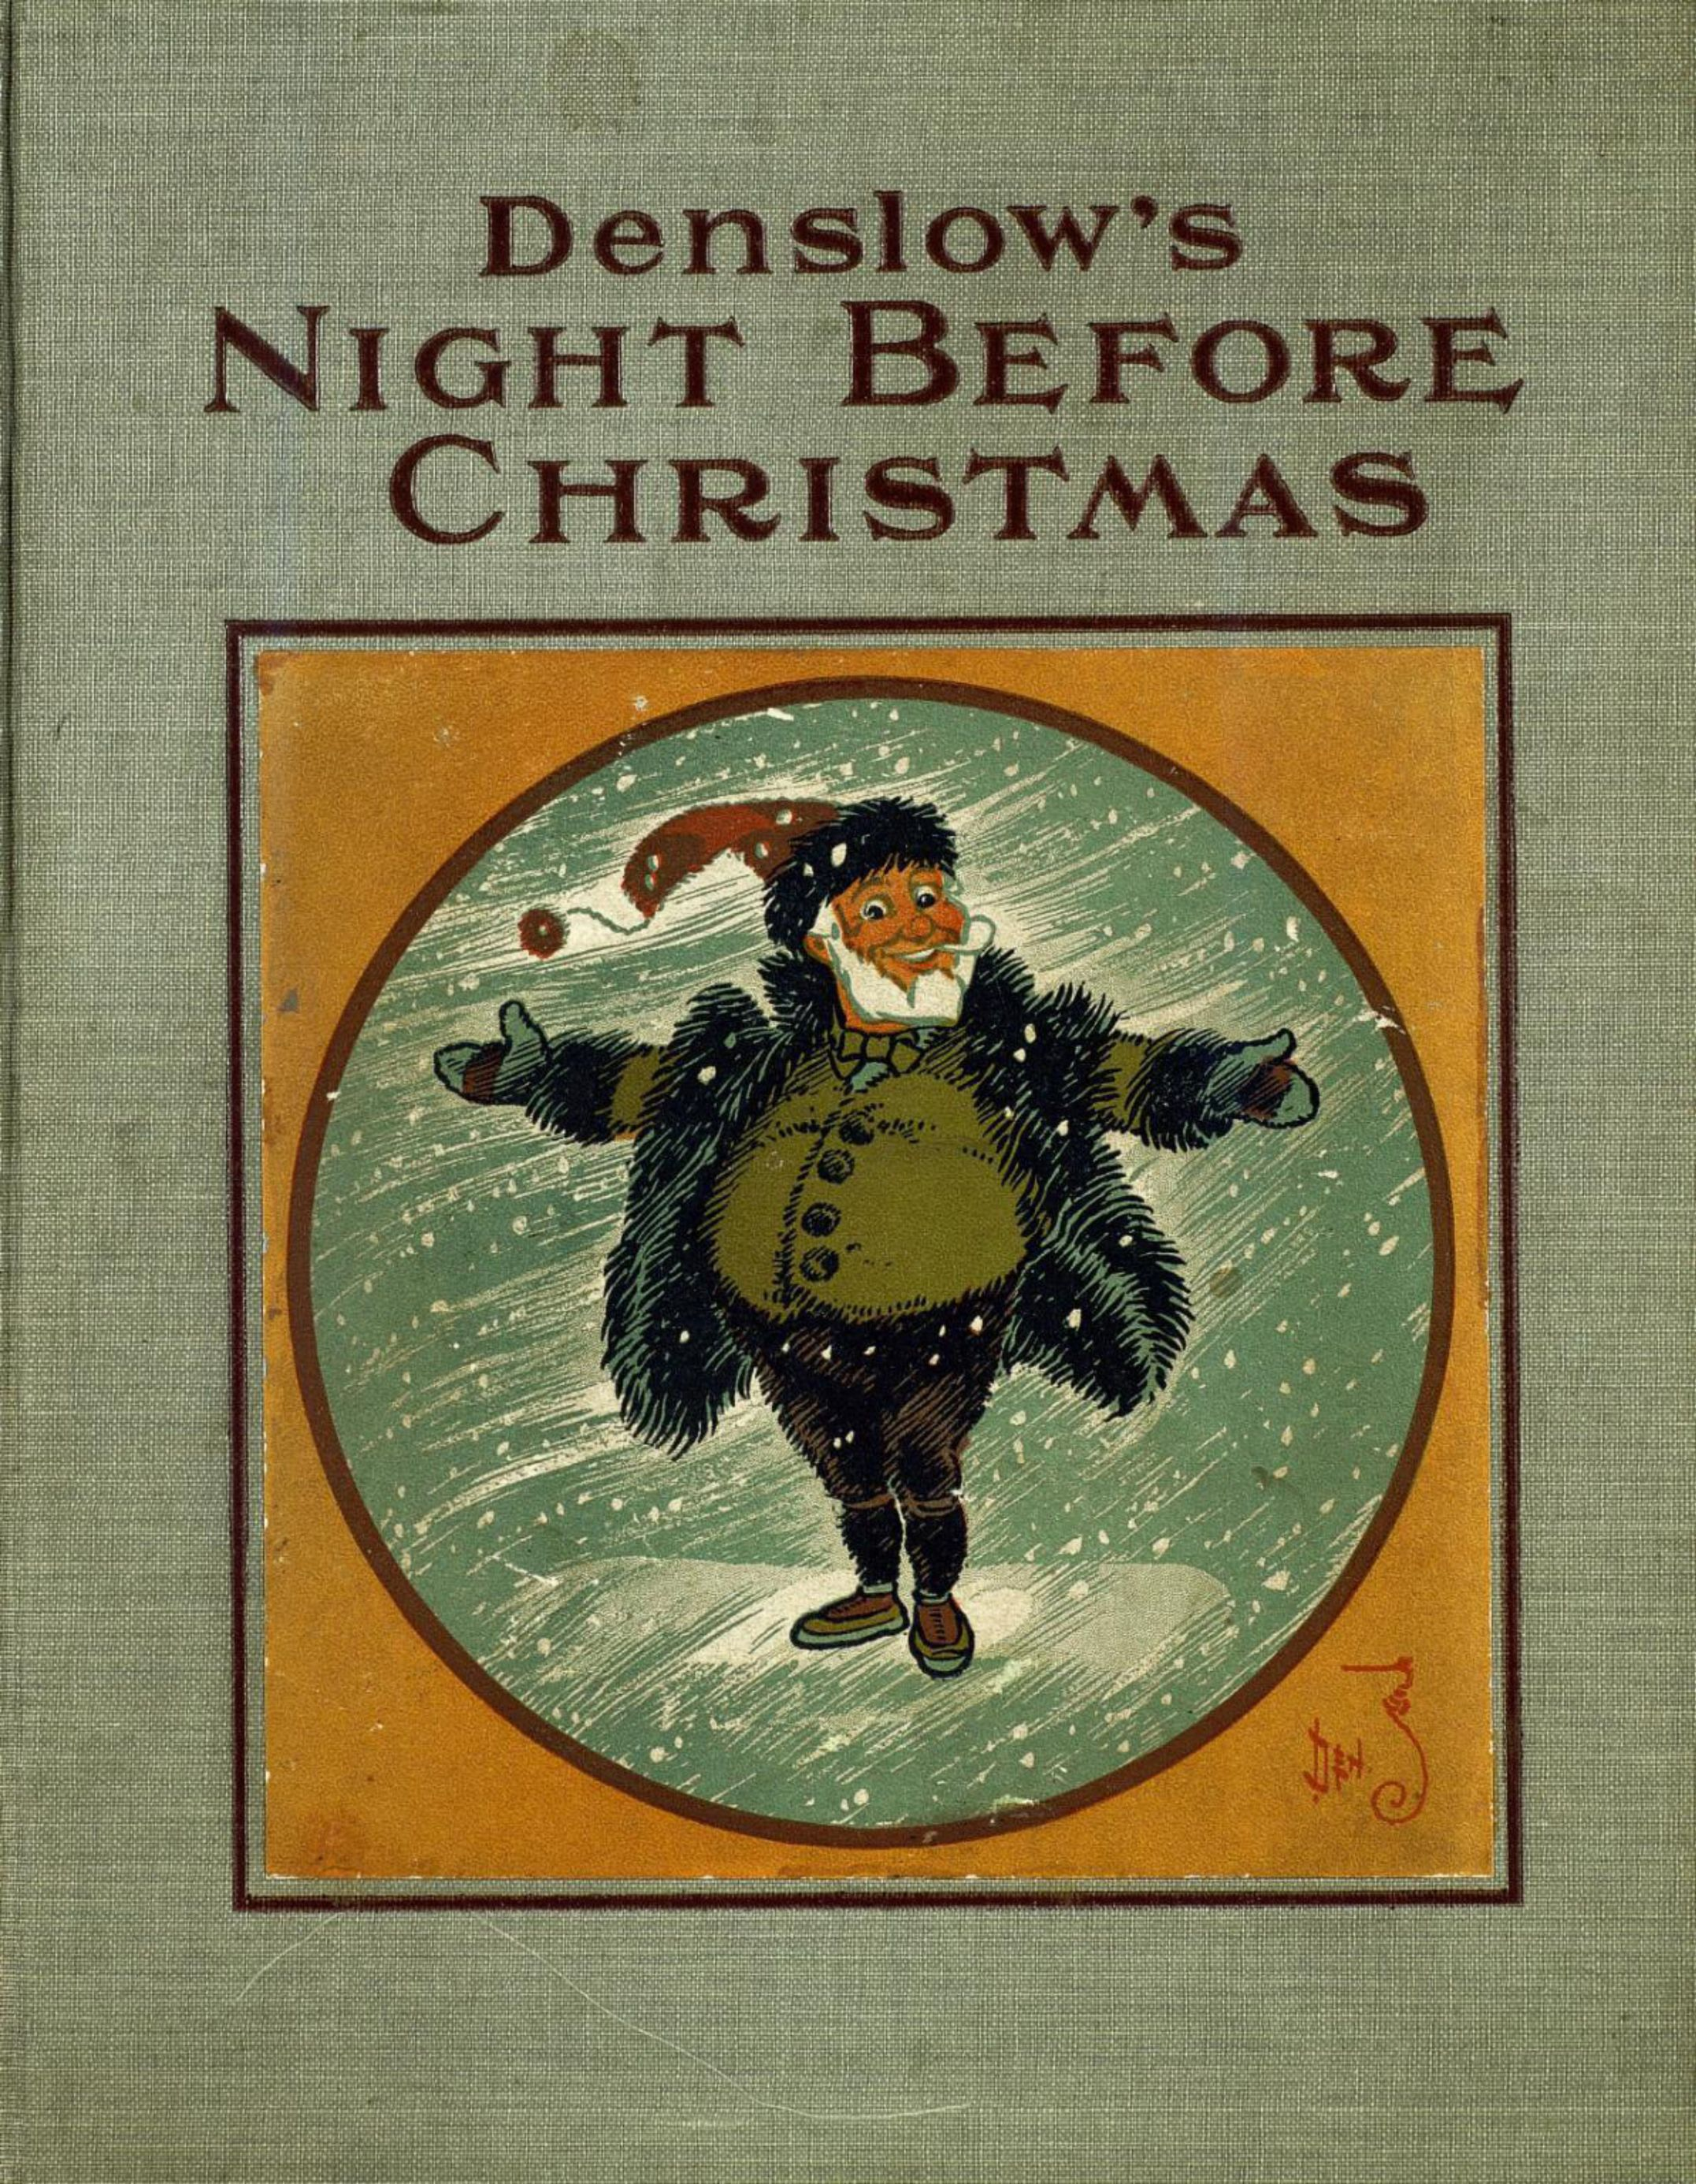 Free Downloads Archives Public Domain Imagespublic Domain Images Childrens Christmas Books The Night Before Christmas Christmas Books